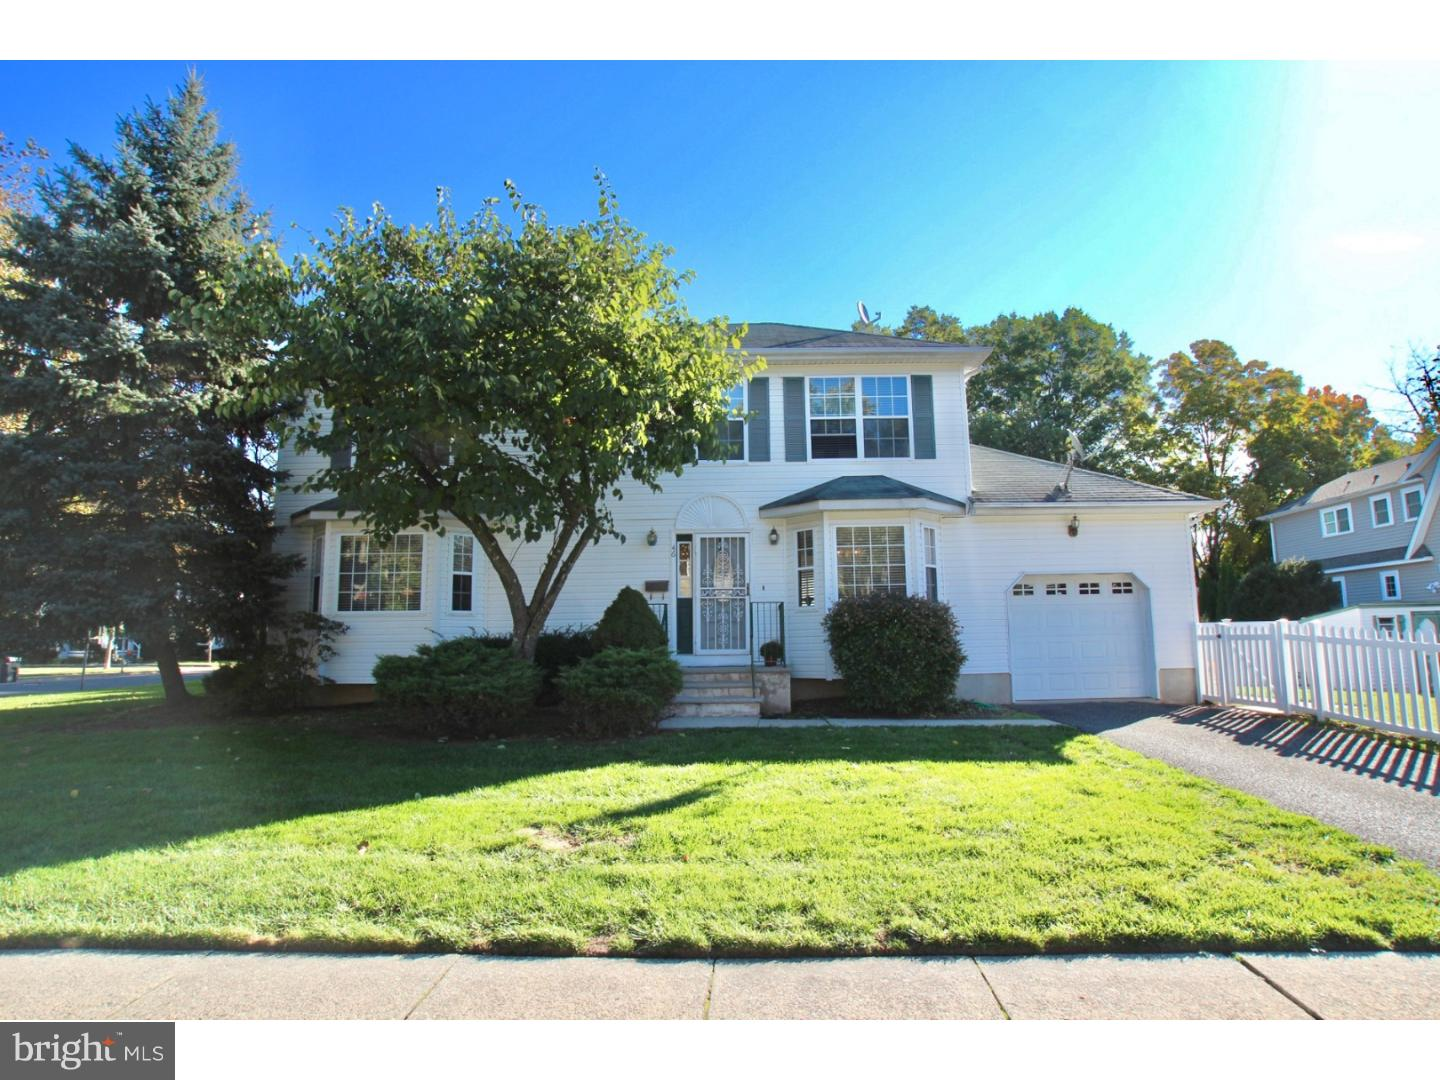 46 KEMPSON PLACE, METUCHEN, NJ 08840